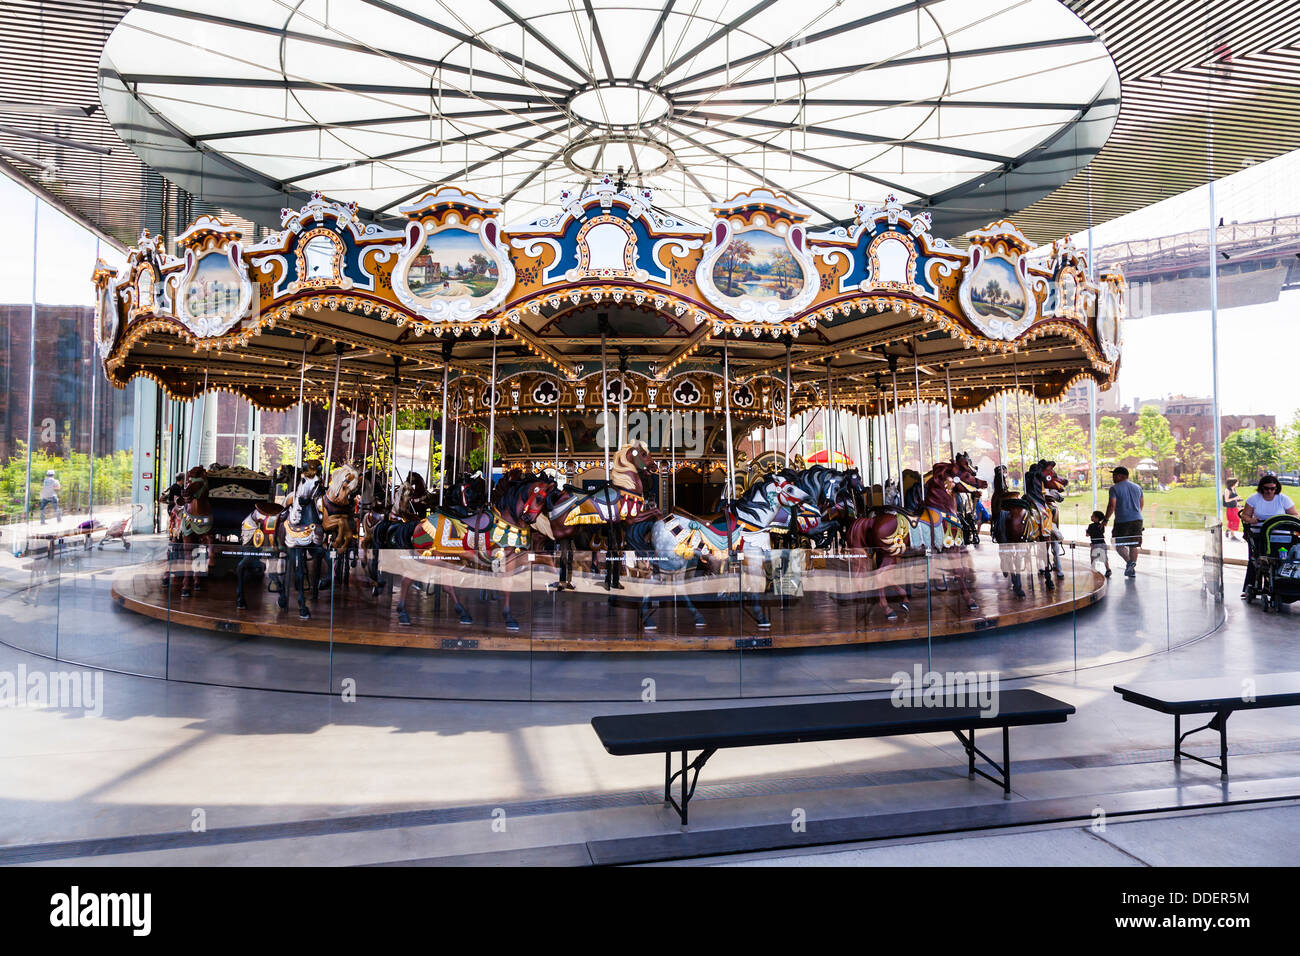 Jane's Carousel, Brooklyn Bridge Park, New York City, USA. - Stock Image